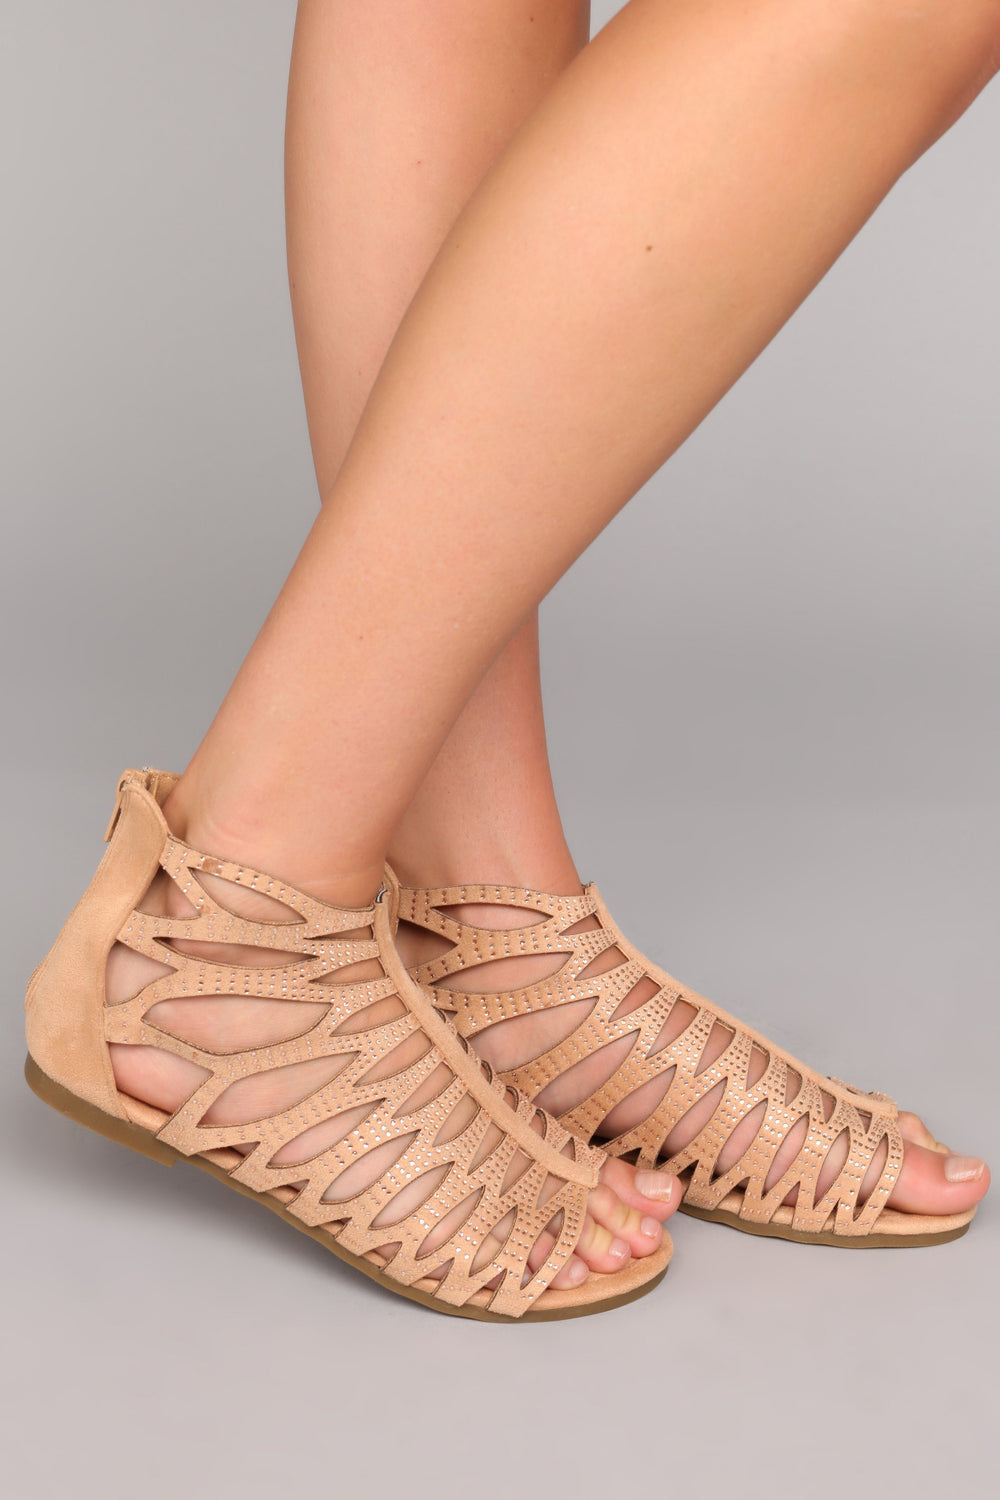 Cut Out For It Sandal - Nude